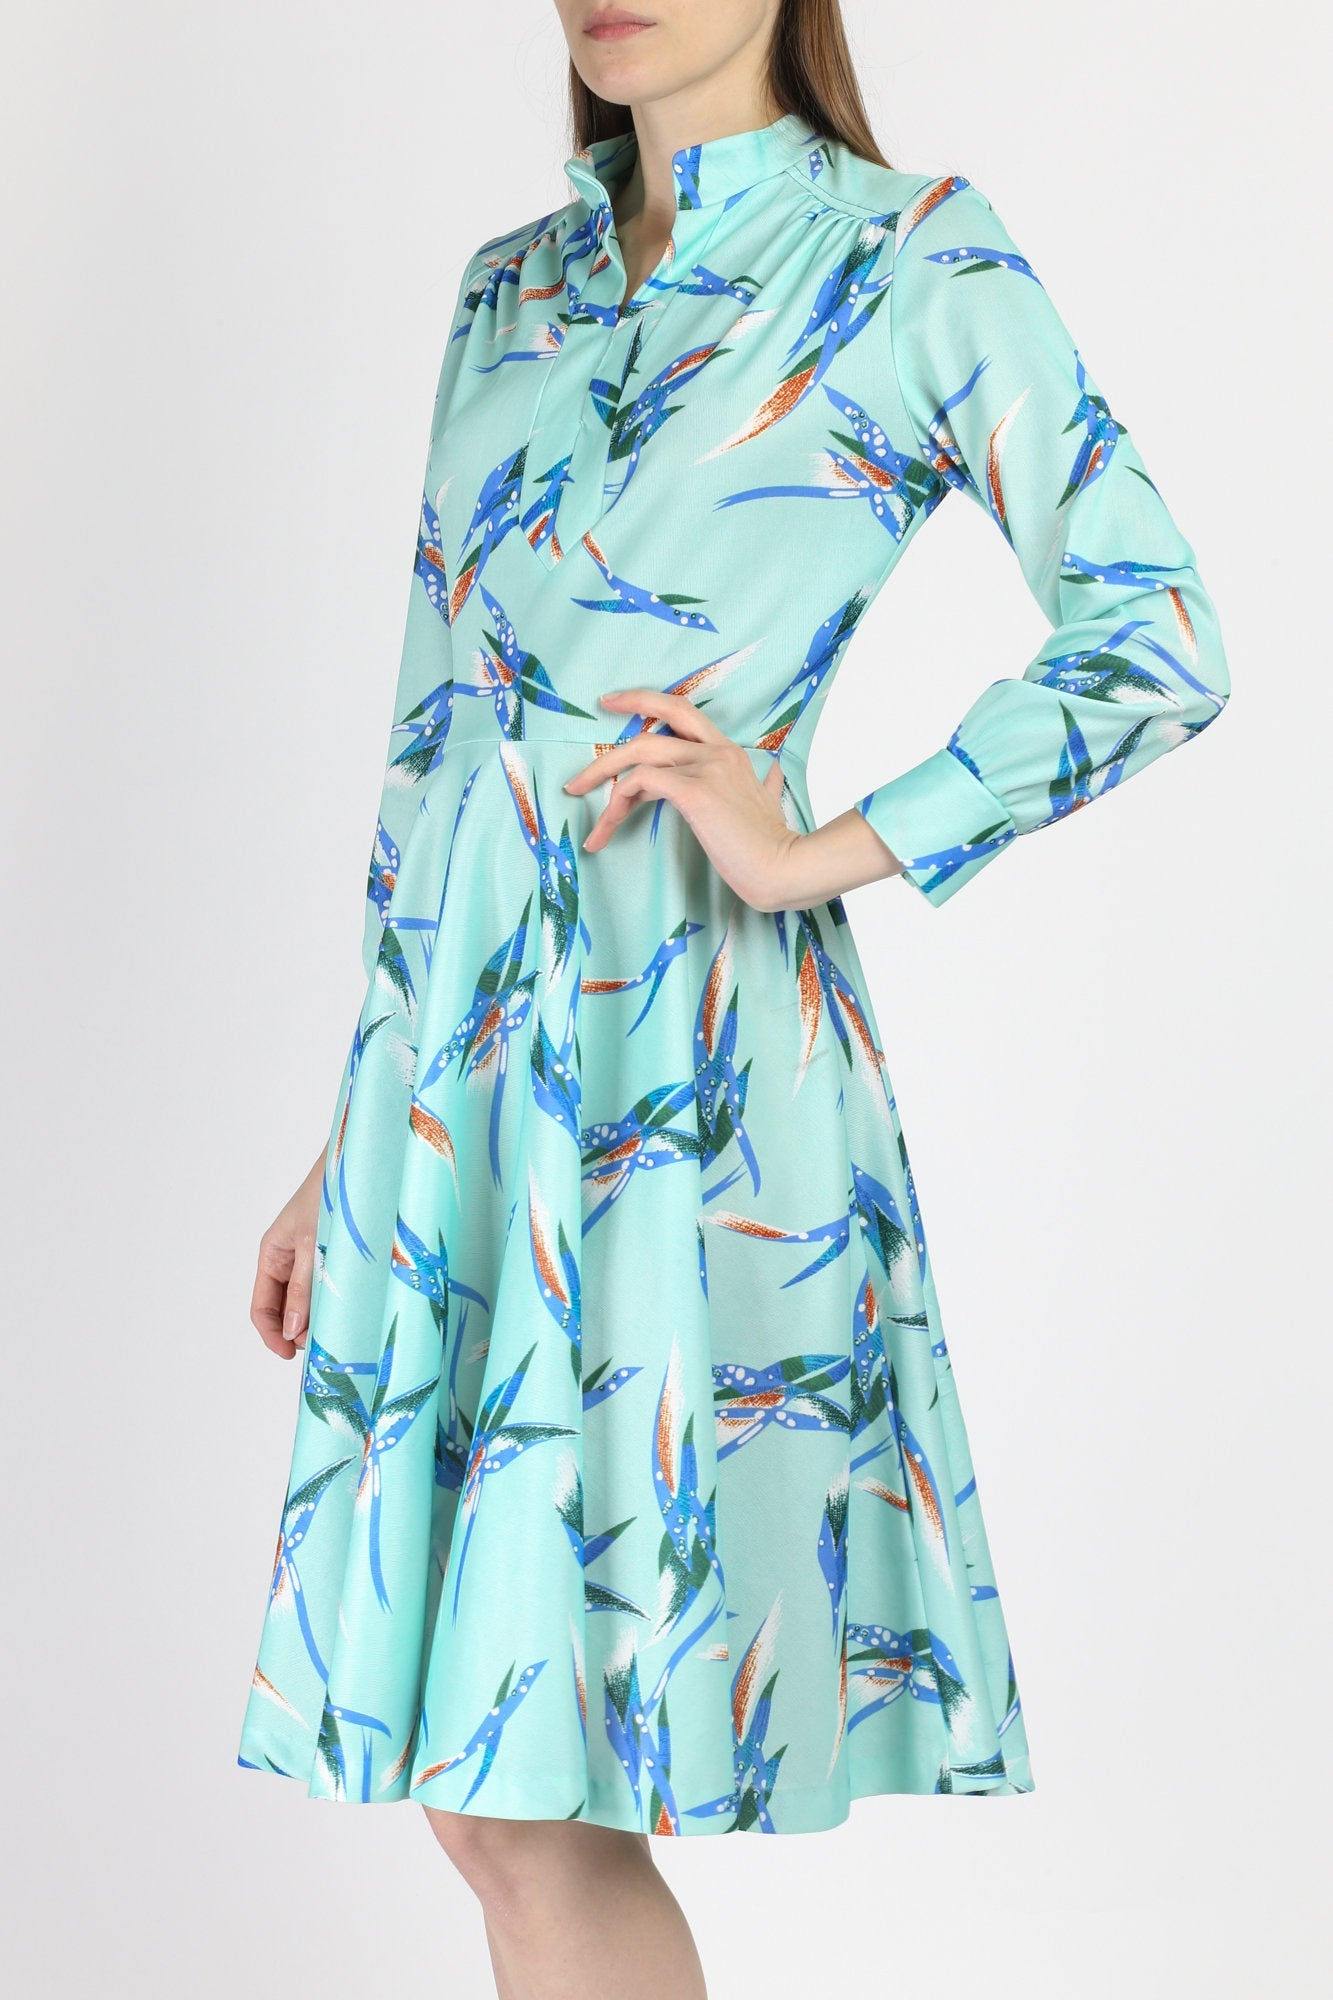 Retro 70s Turquoise Long Sleeve Dress - Medium